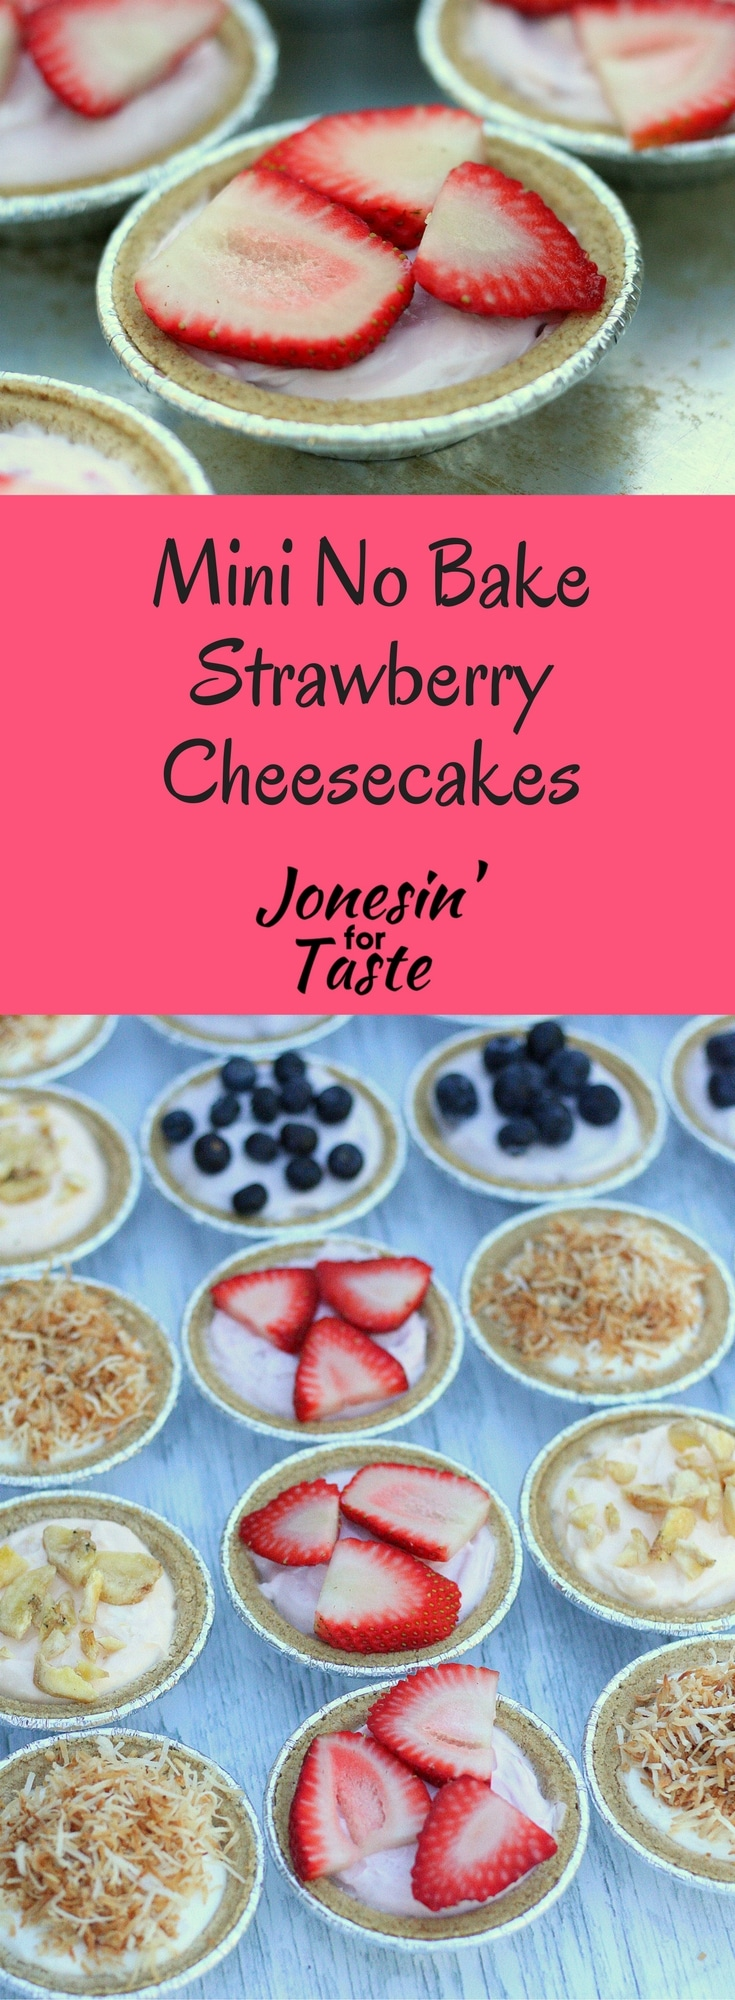 This easy recipe for No Bake Strawberry Cheesecakes are a perfect light treat or snack that you can whip up in a flash.